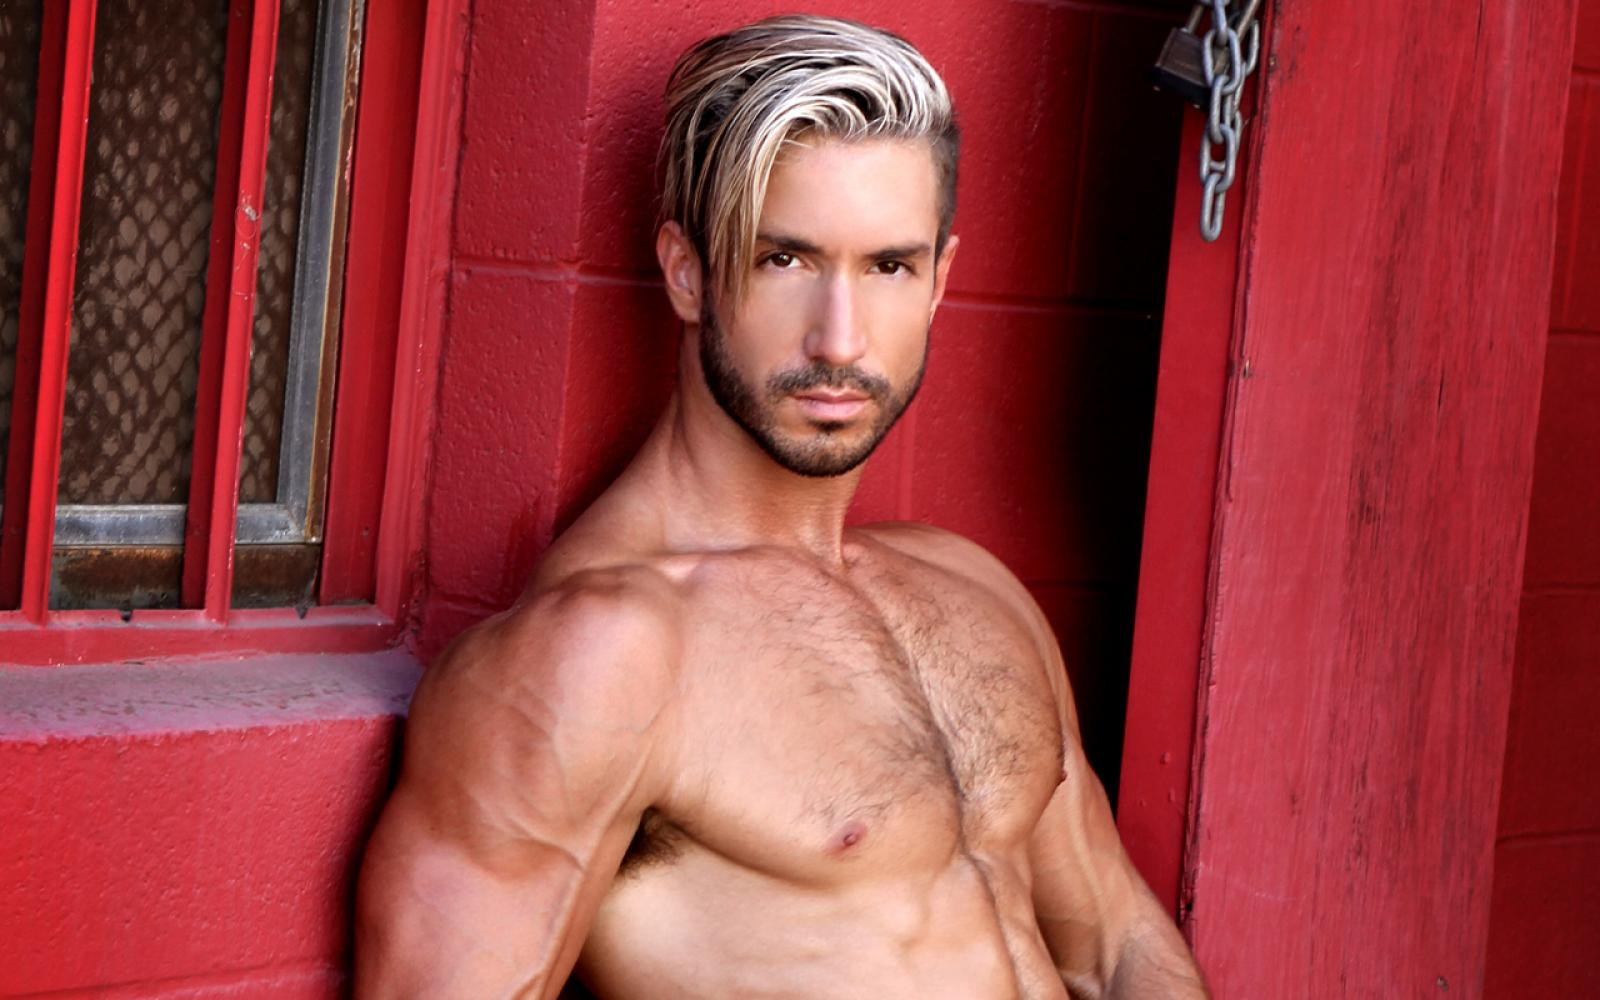 Gay Adult Film Star Ian Frost Blasted For Attending Packed